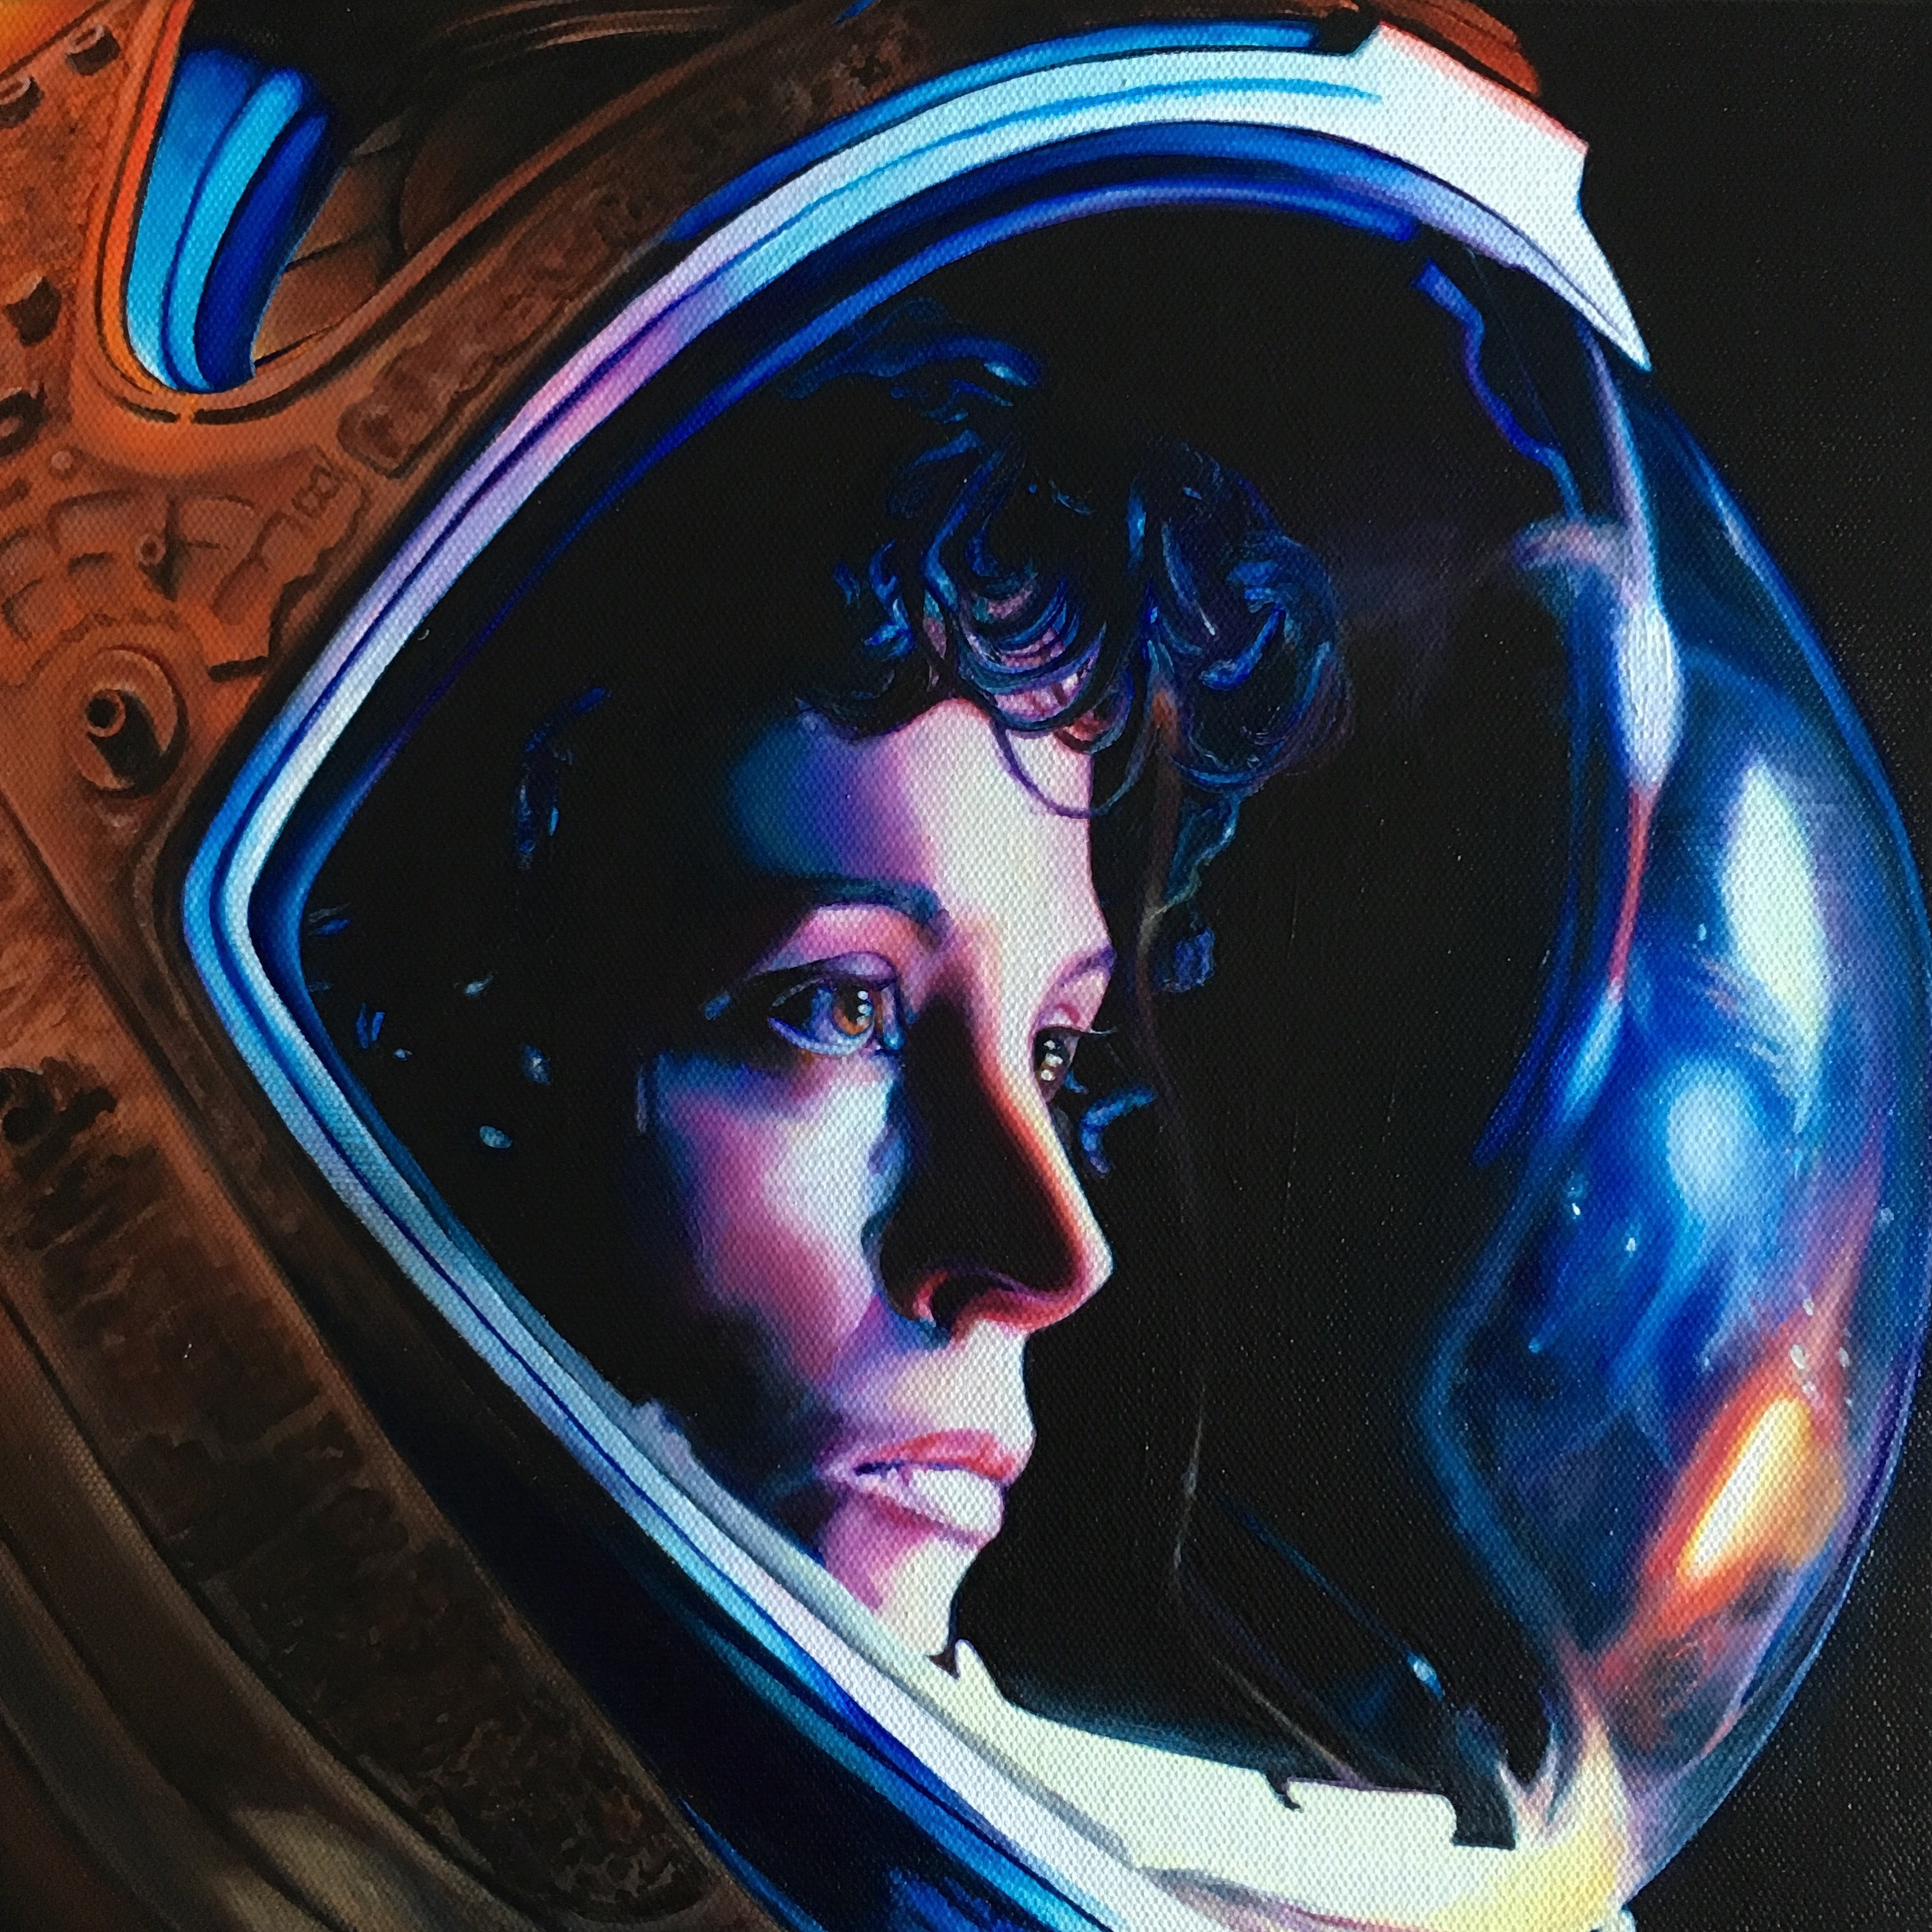 Ripley - Part of Set